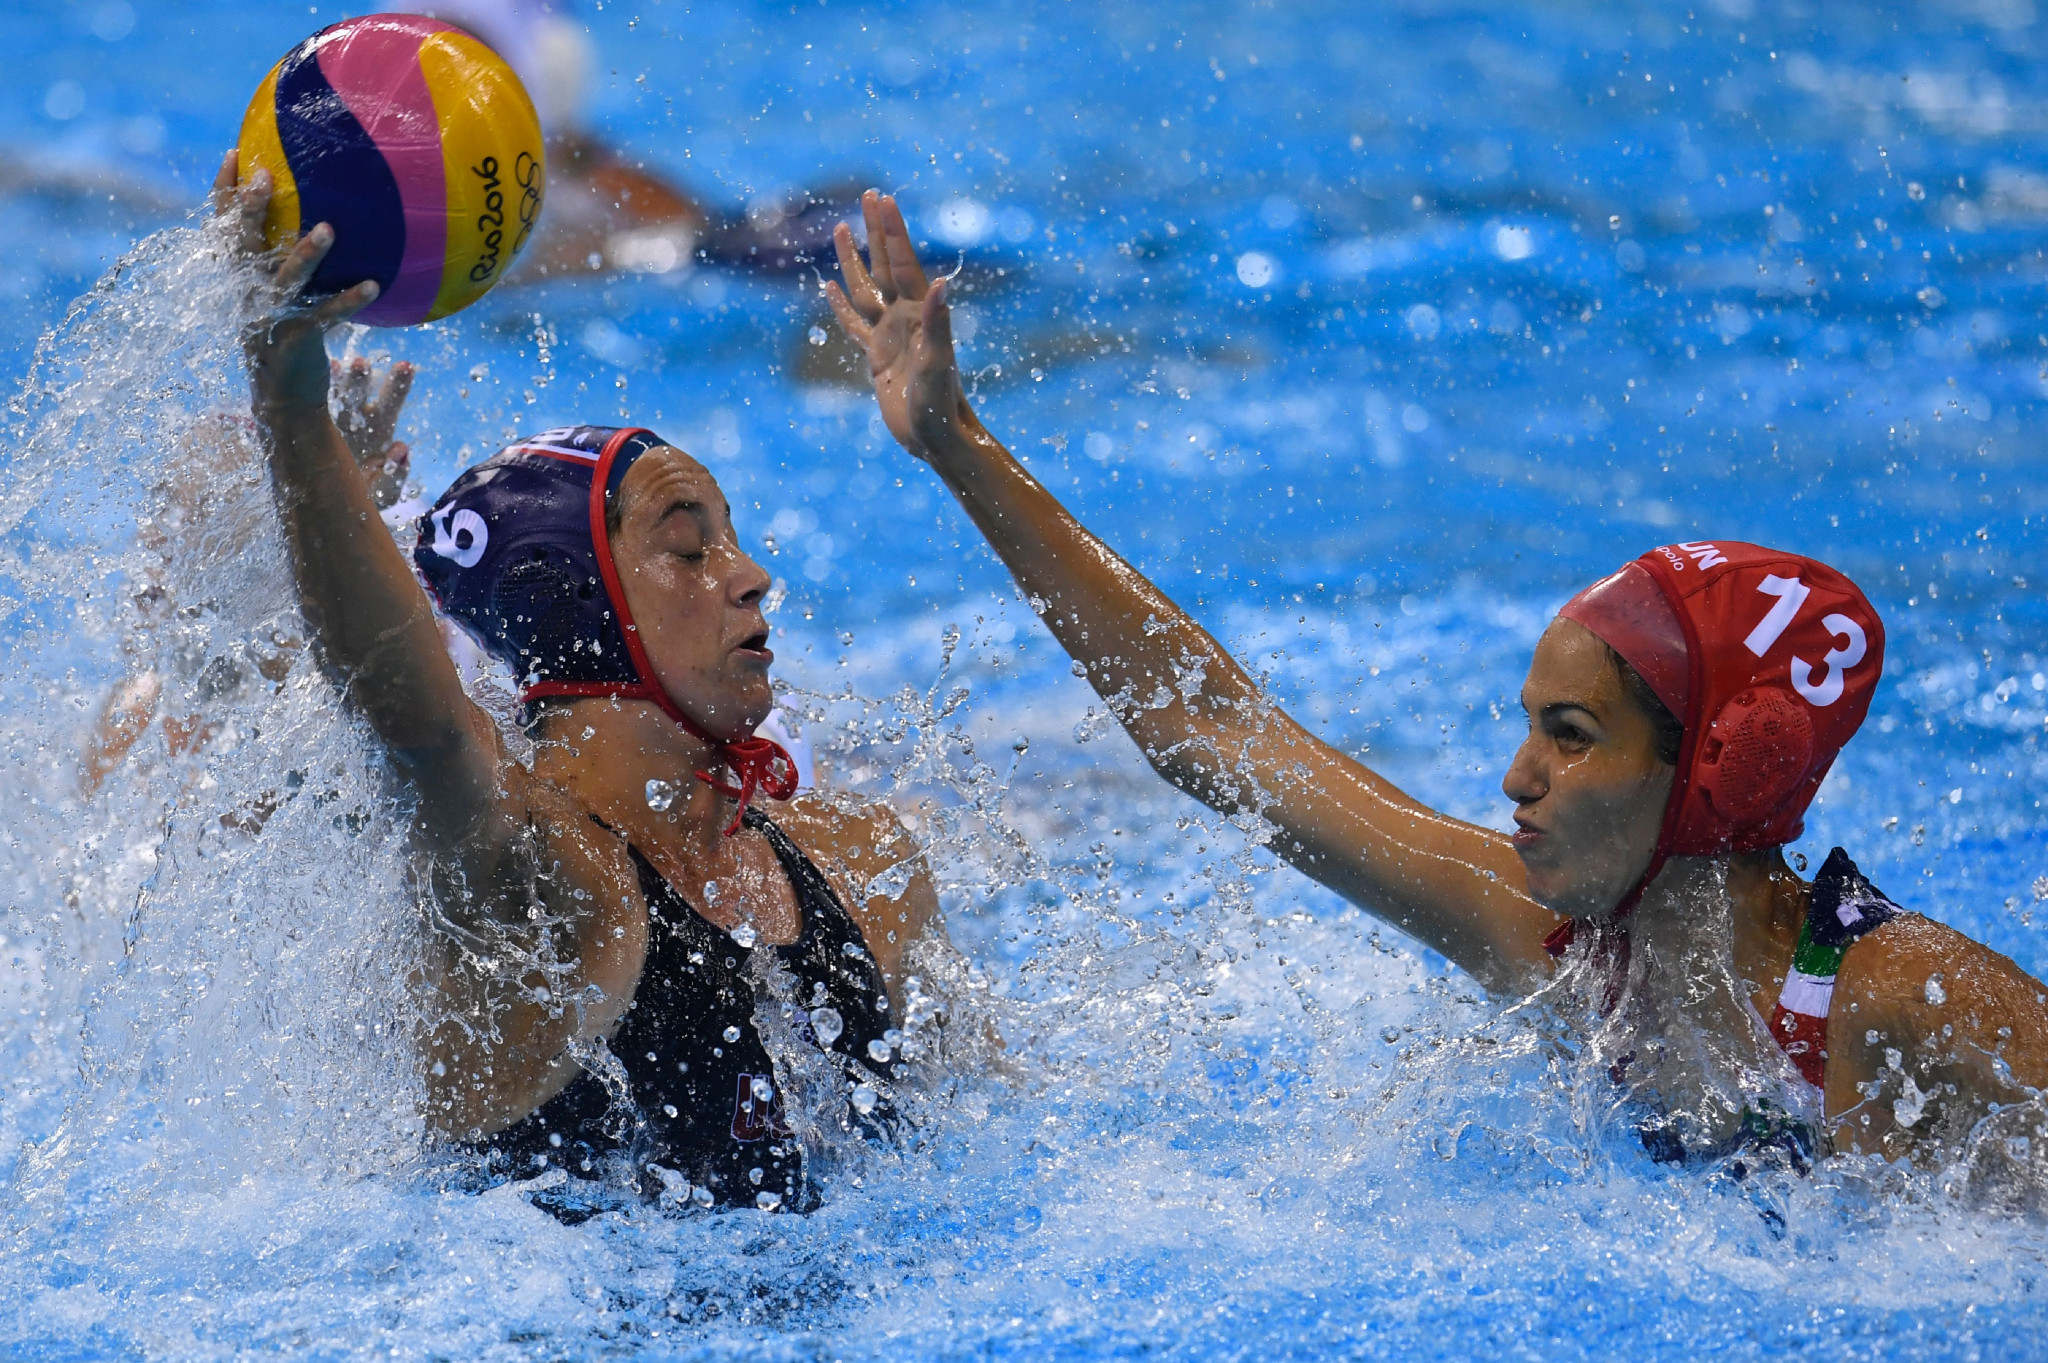 United States win third Women's Water Polo World Cup title in a row